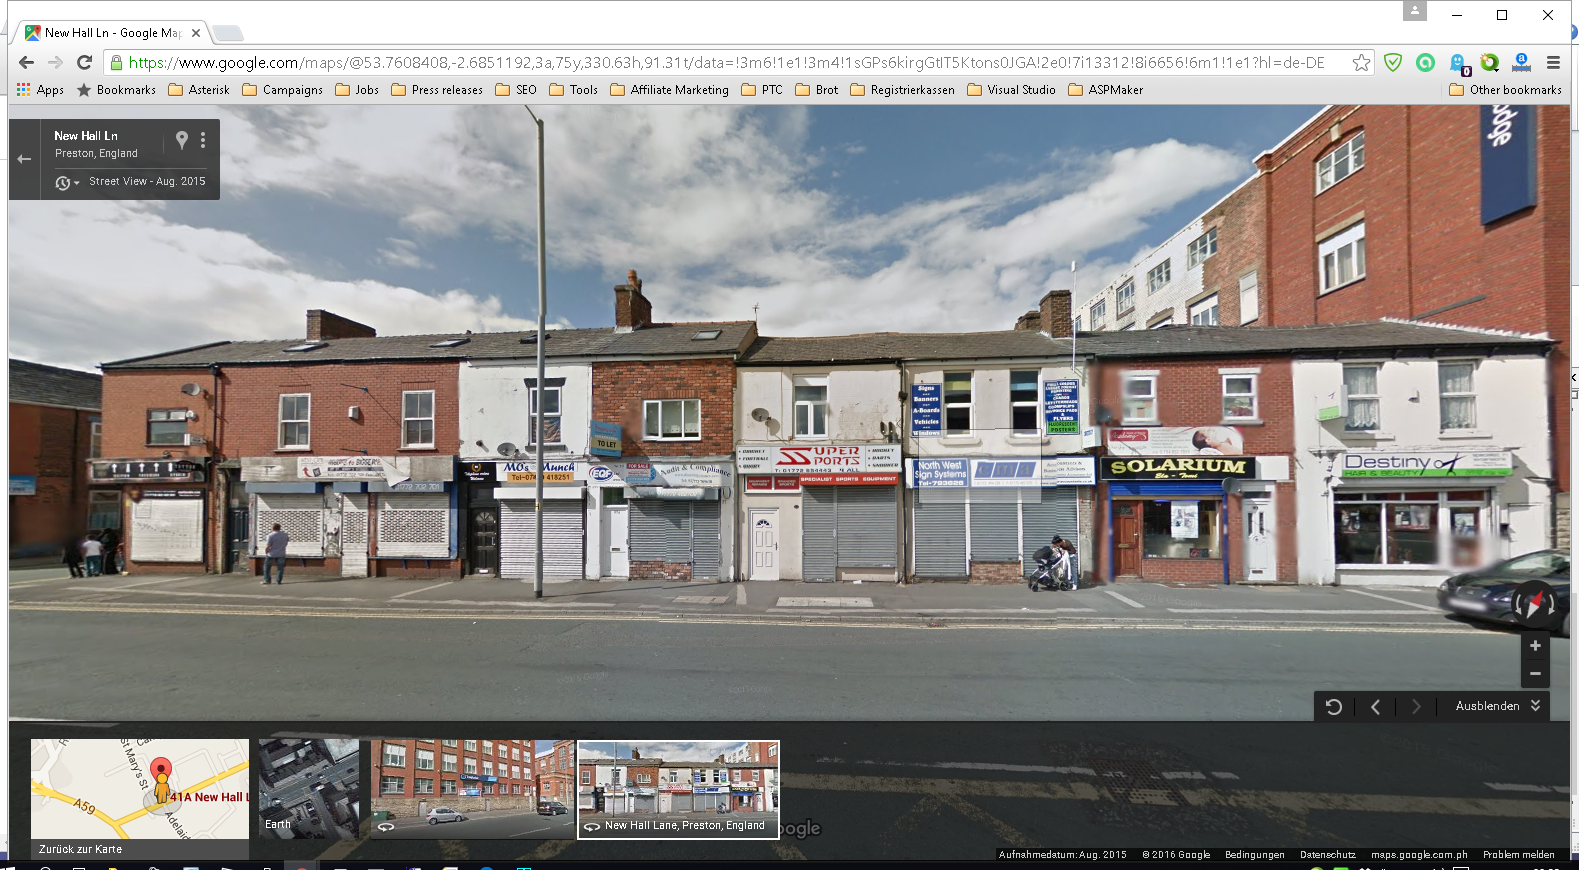 Google Street View from 41 New Hall Lane, Preston, United Kingdom, PR1 5NX